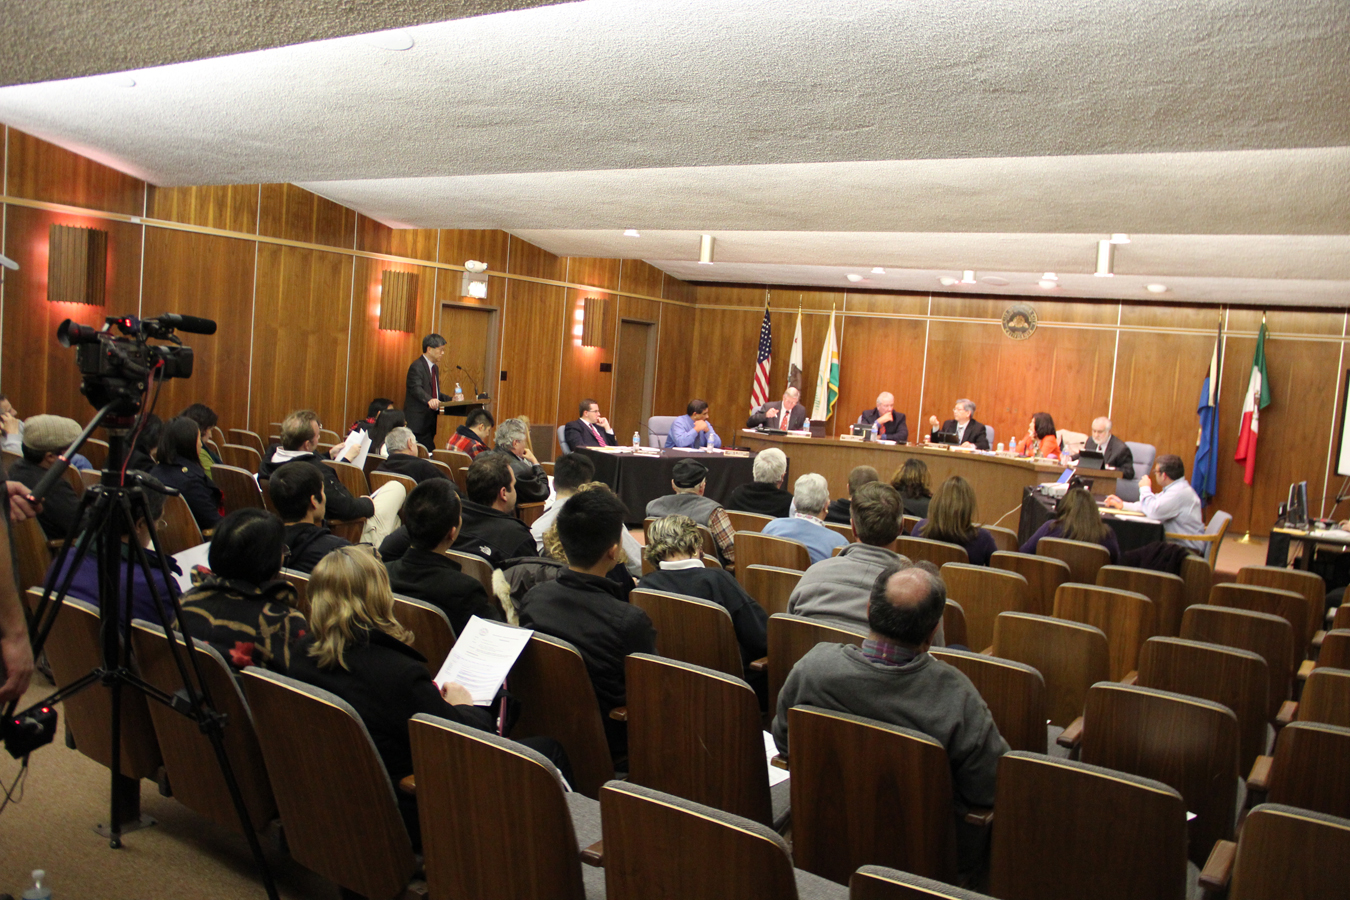 City Council Meeting Business Case